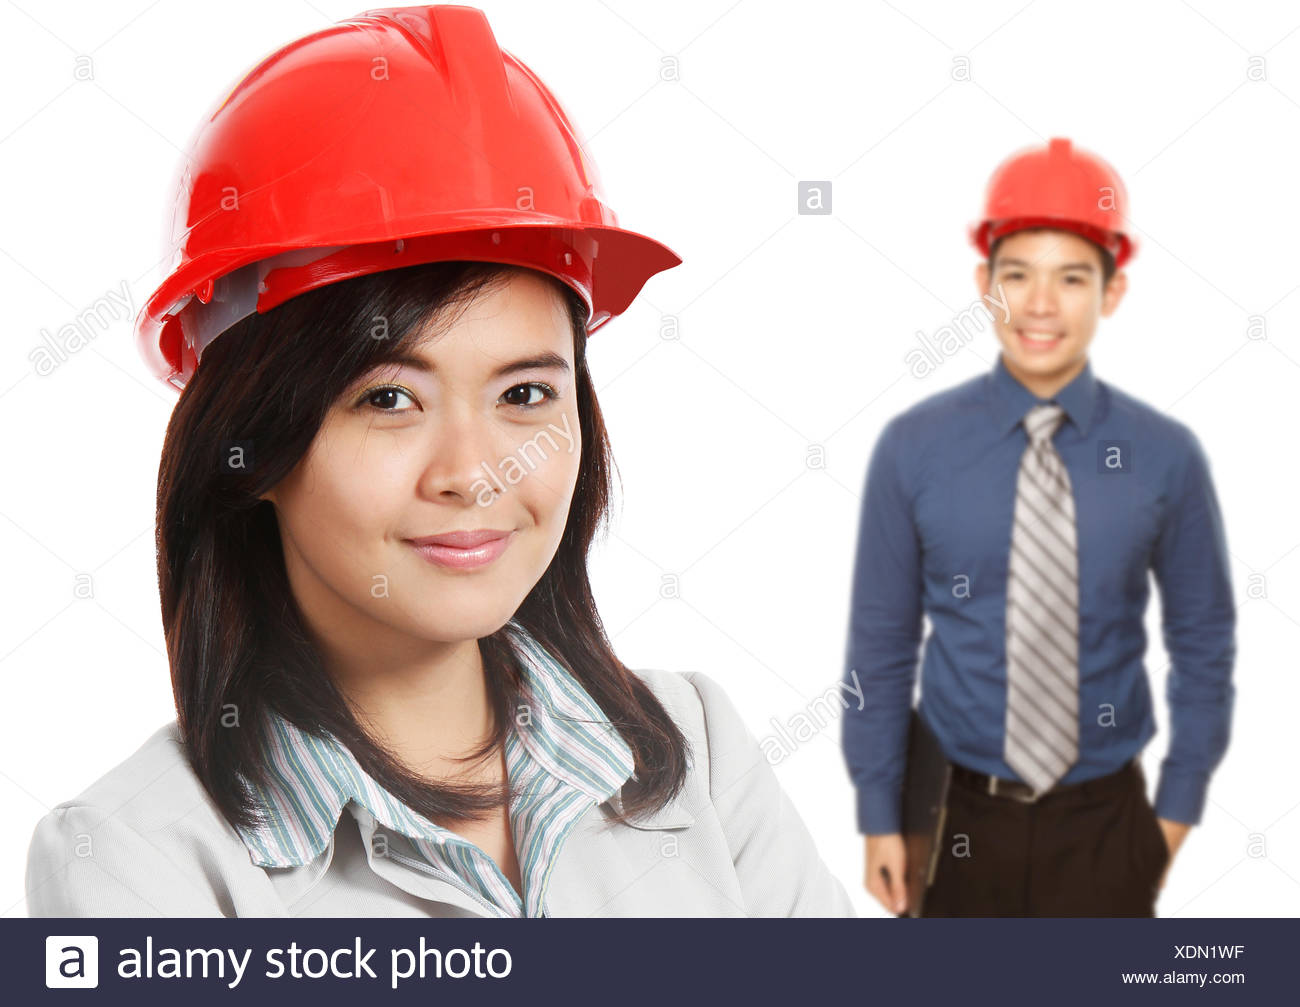 Man and Woman With Hardhats - Stock Image